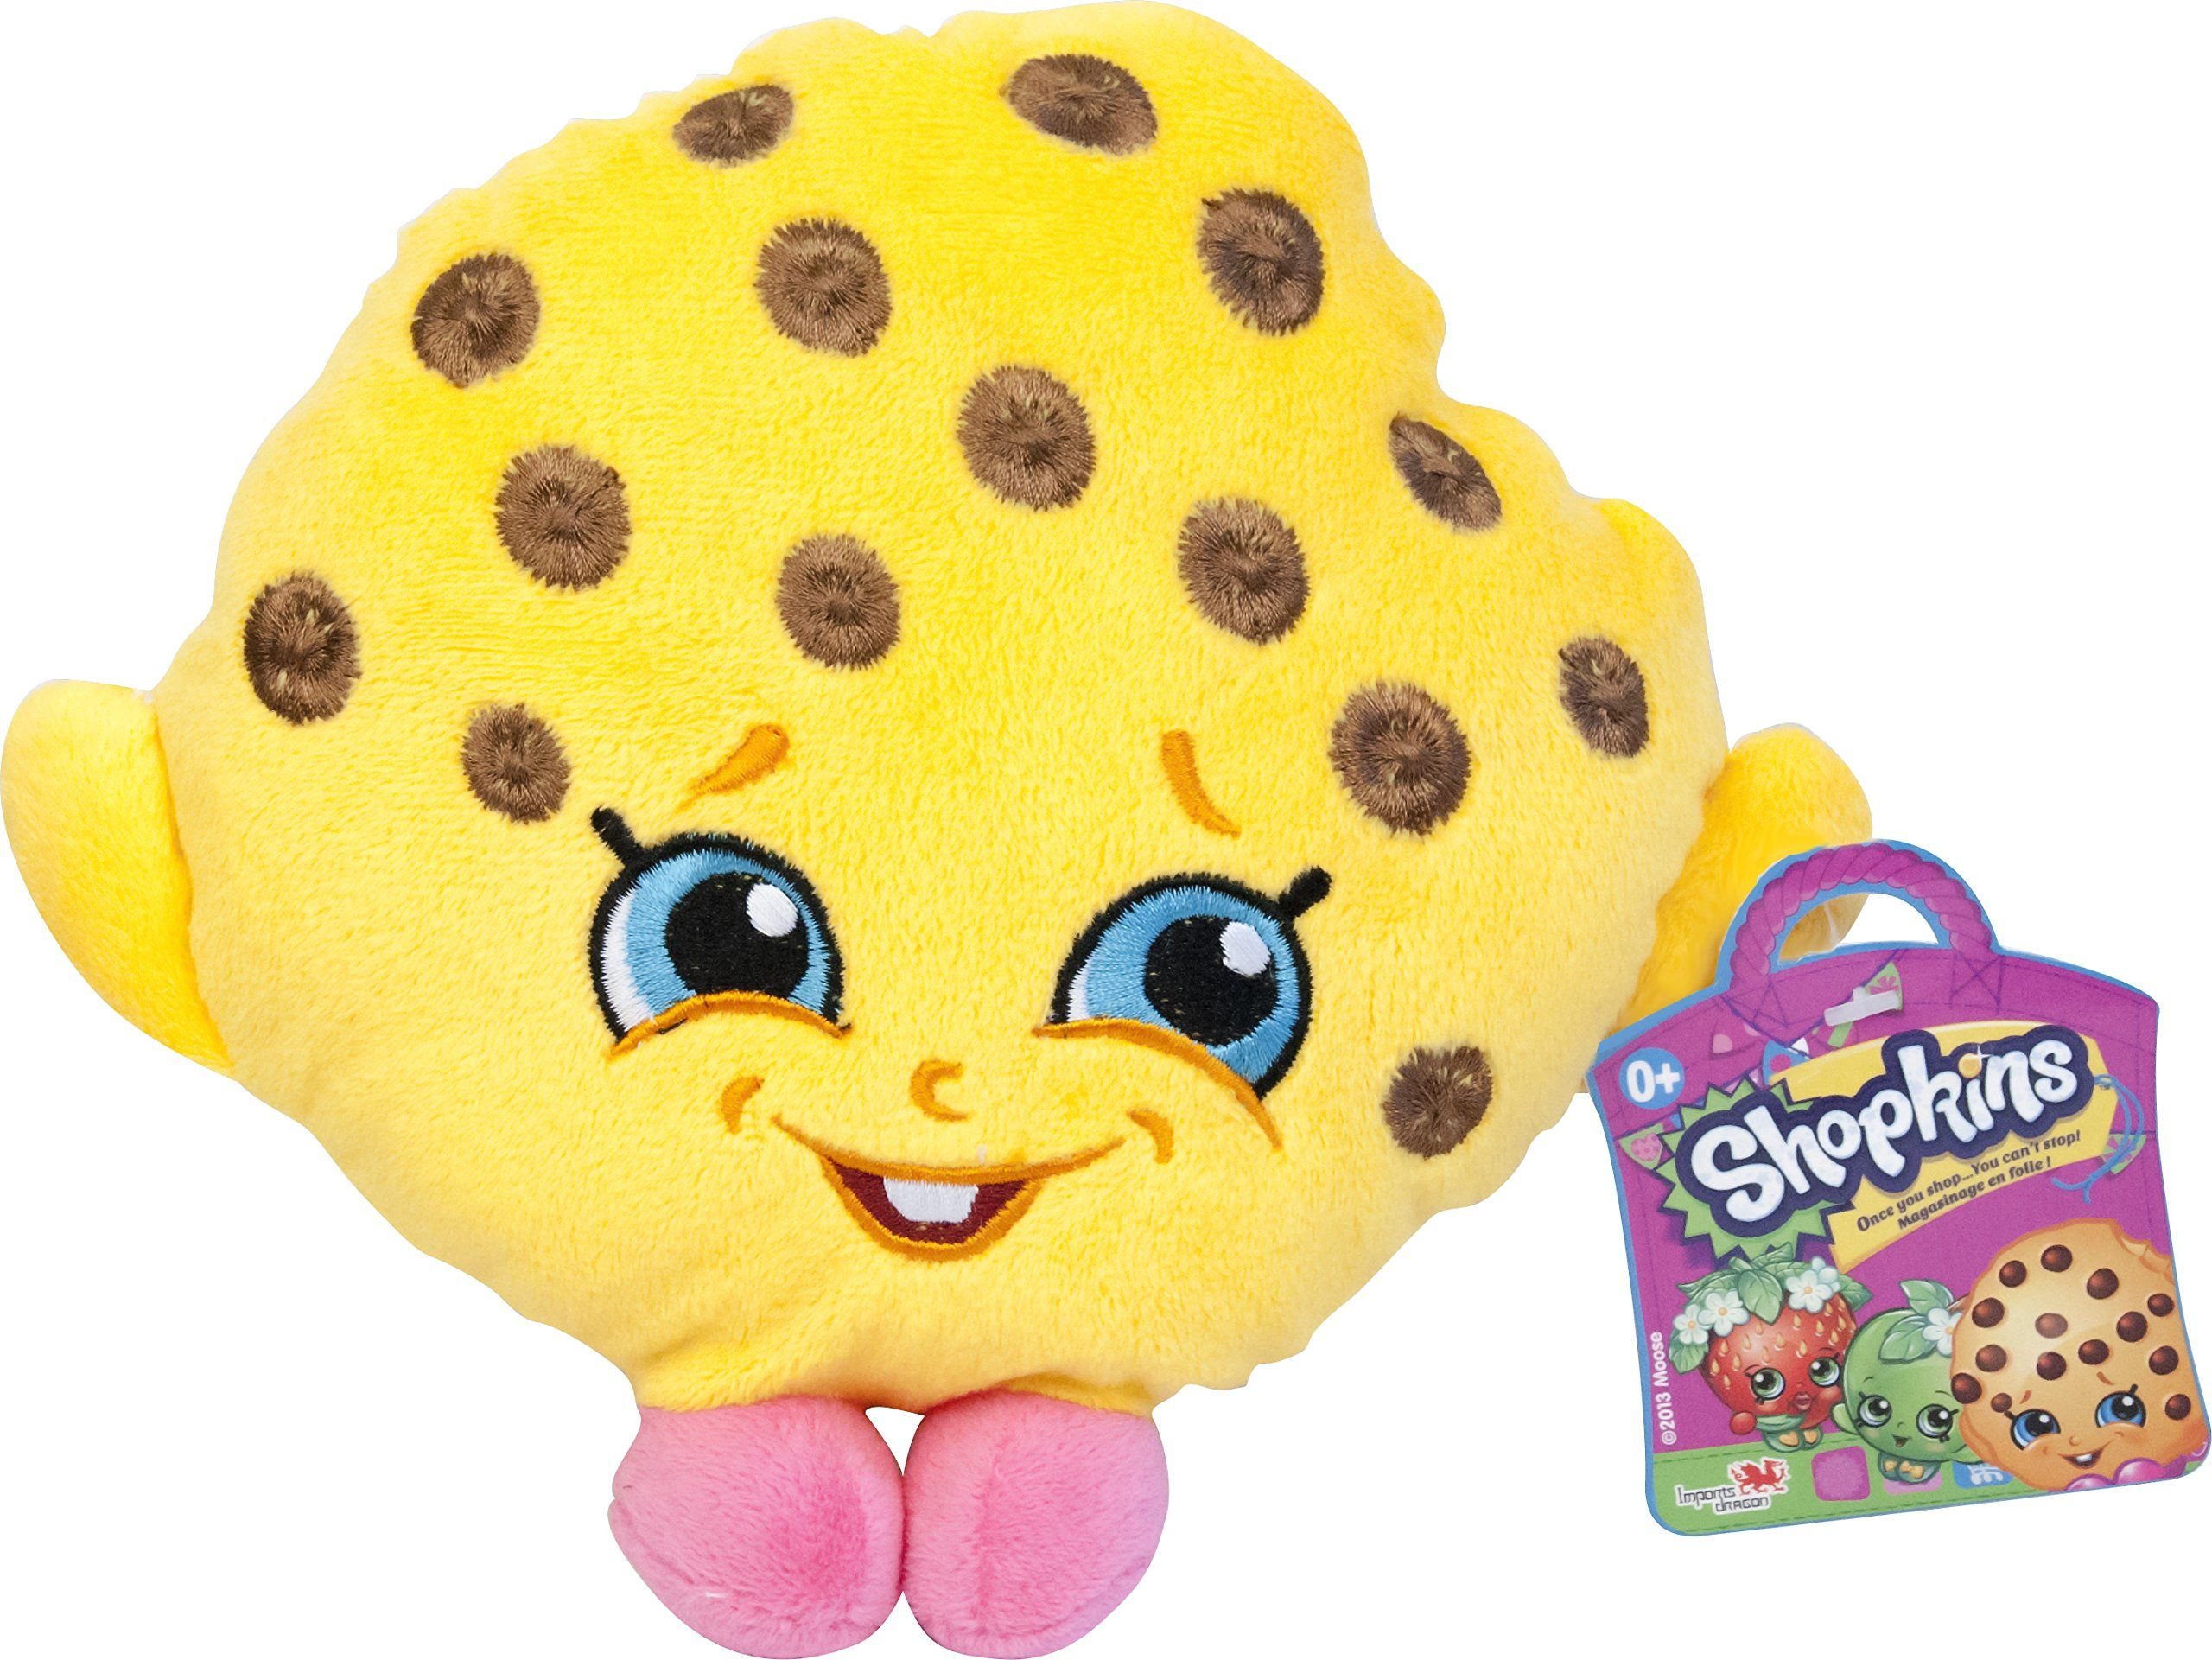 Shopkins Shopkins 8'' Plush, Kooky Plush Shopkins, Plush